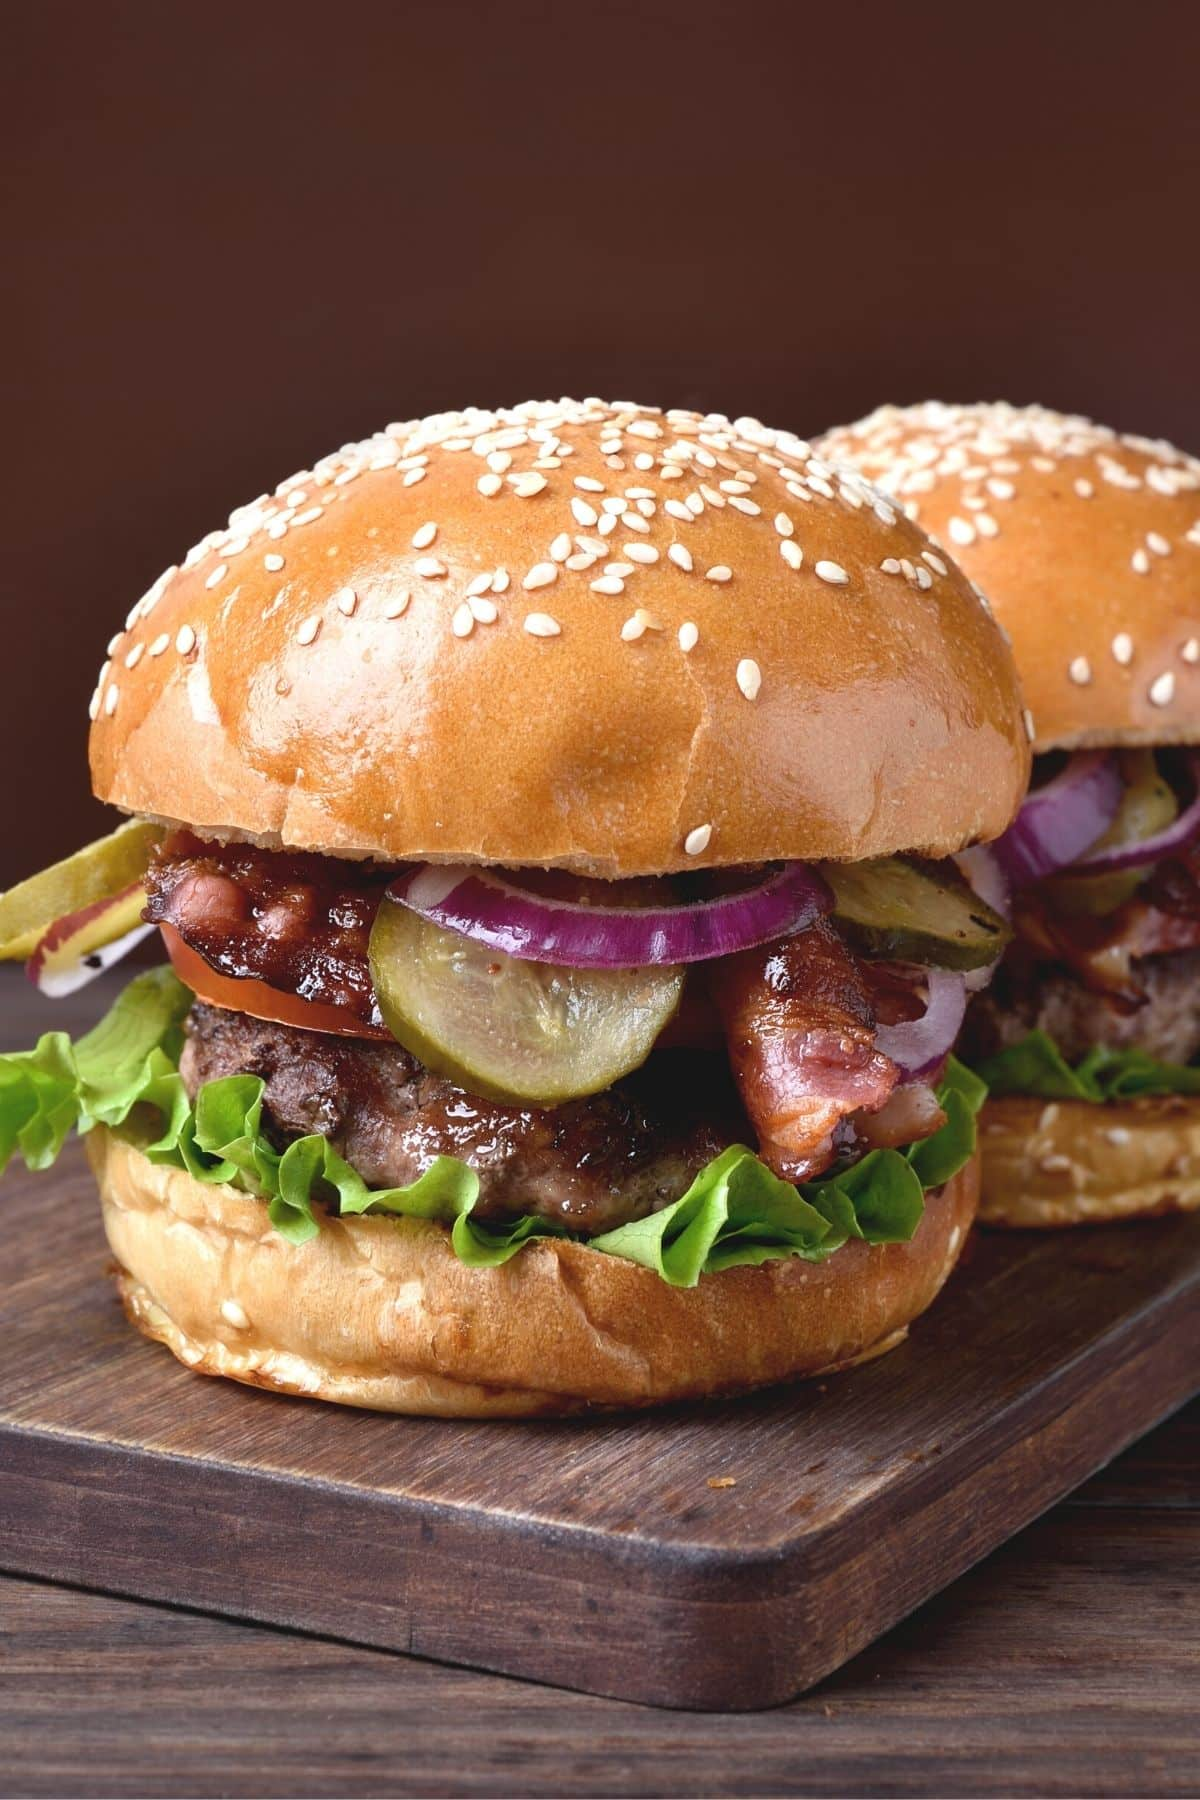 two hamburgers on buns ready to eat